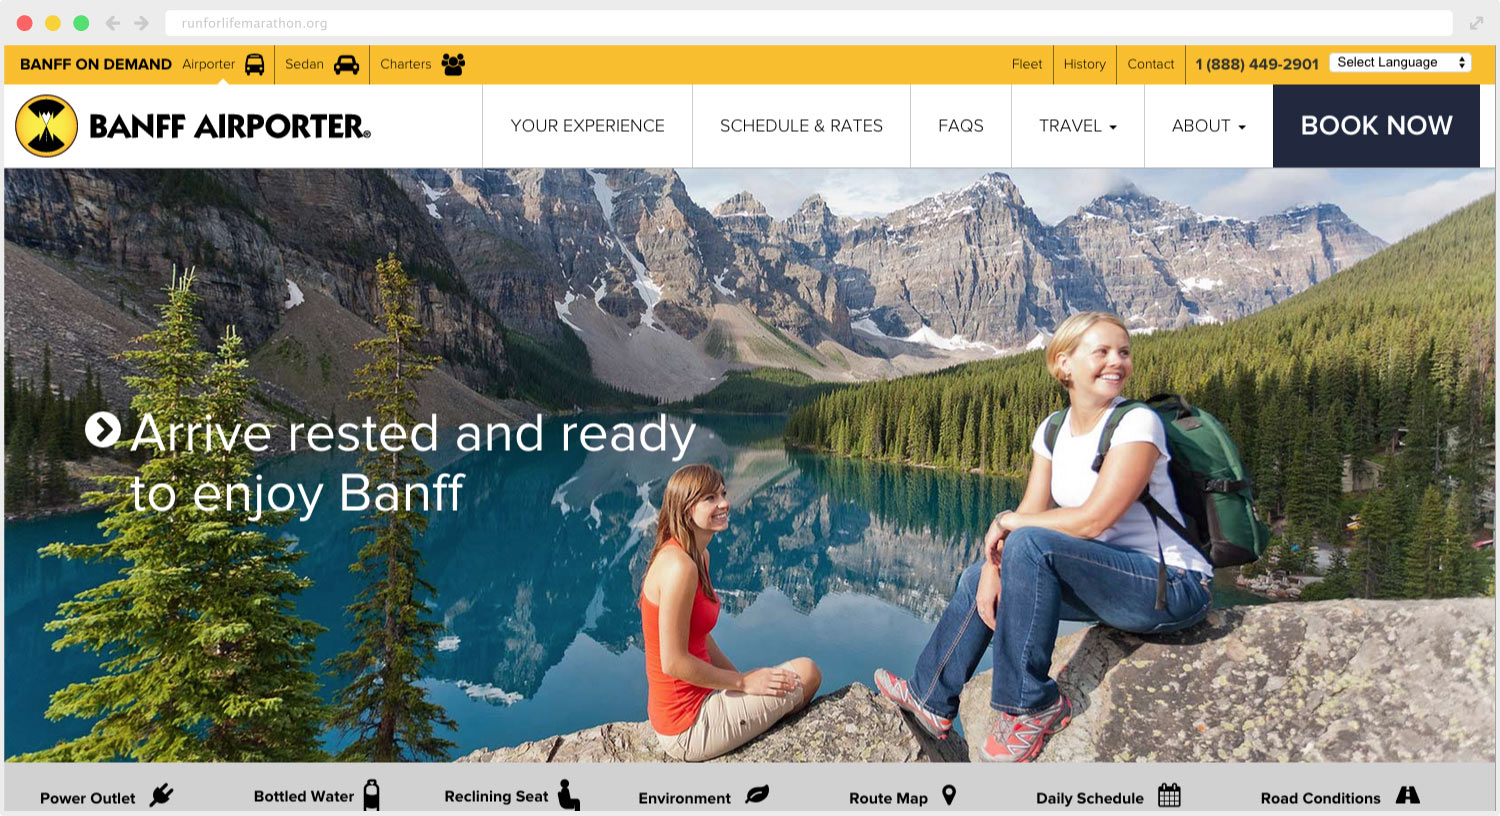 Banff Airporter Site Design